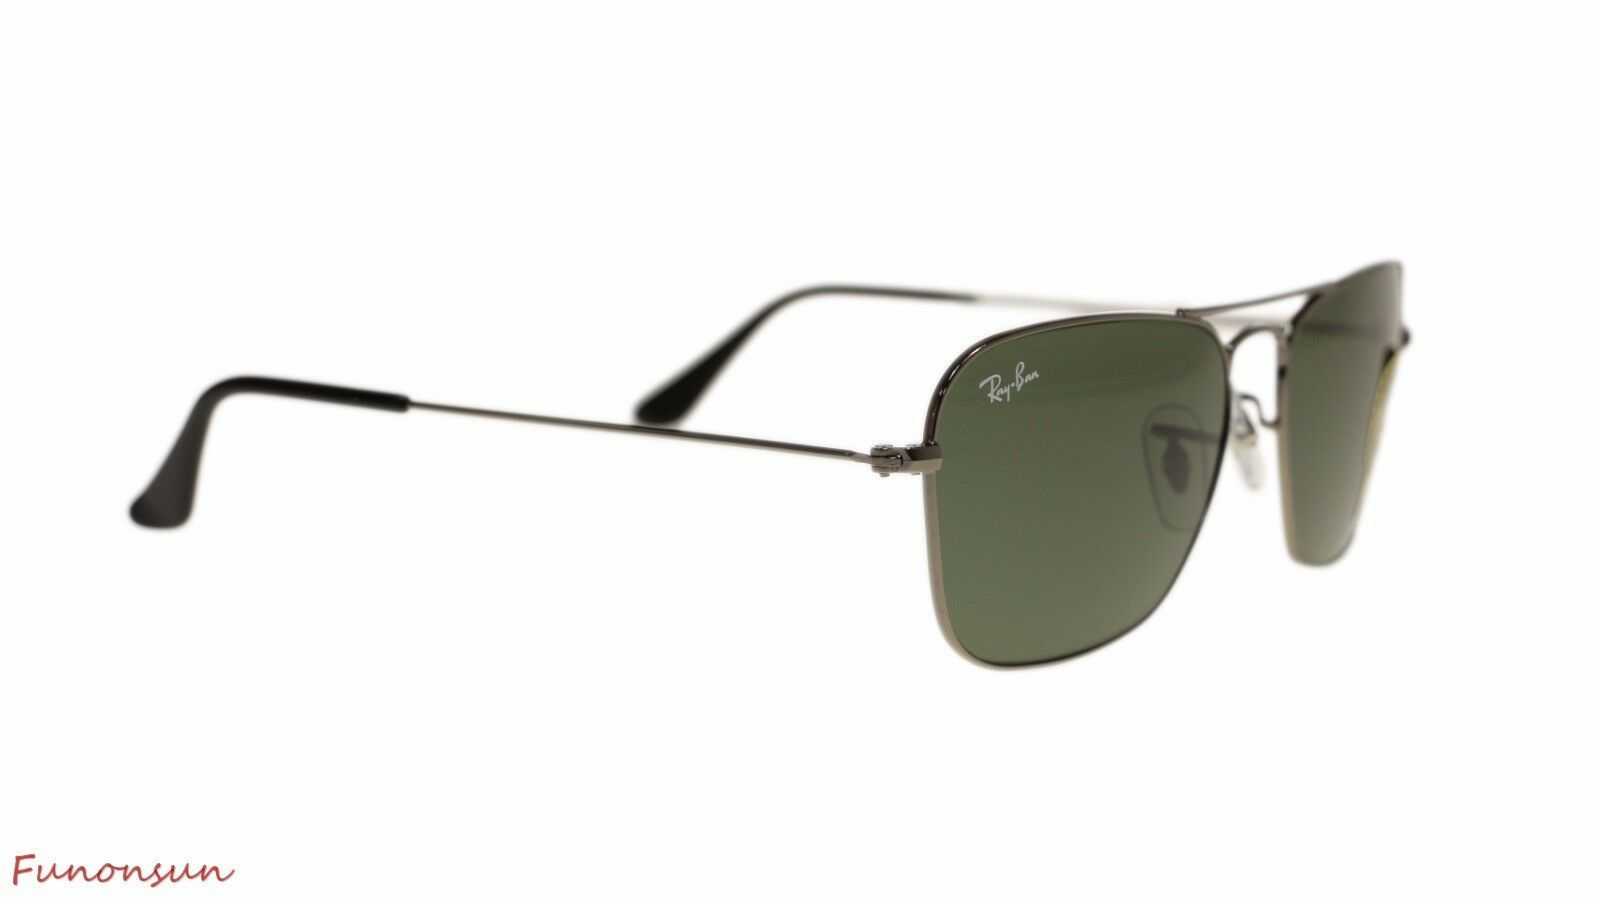 Ray Ban Mens Sunglasses RB3136 004 Gunmetal Green Lens 55mm Authentic